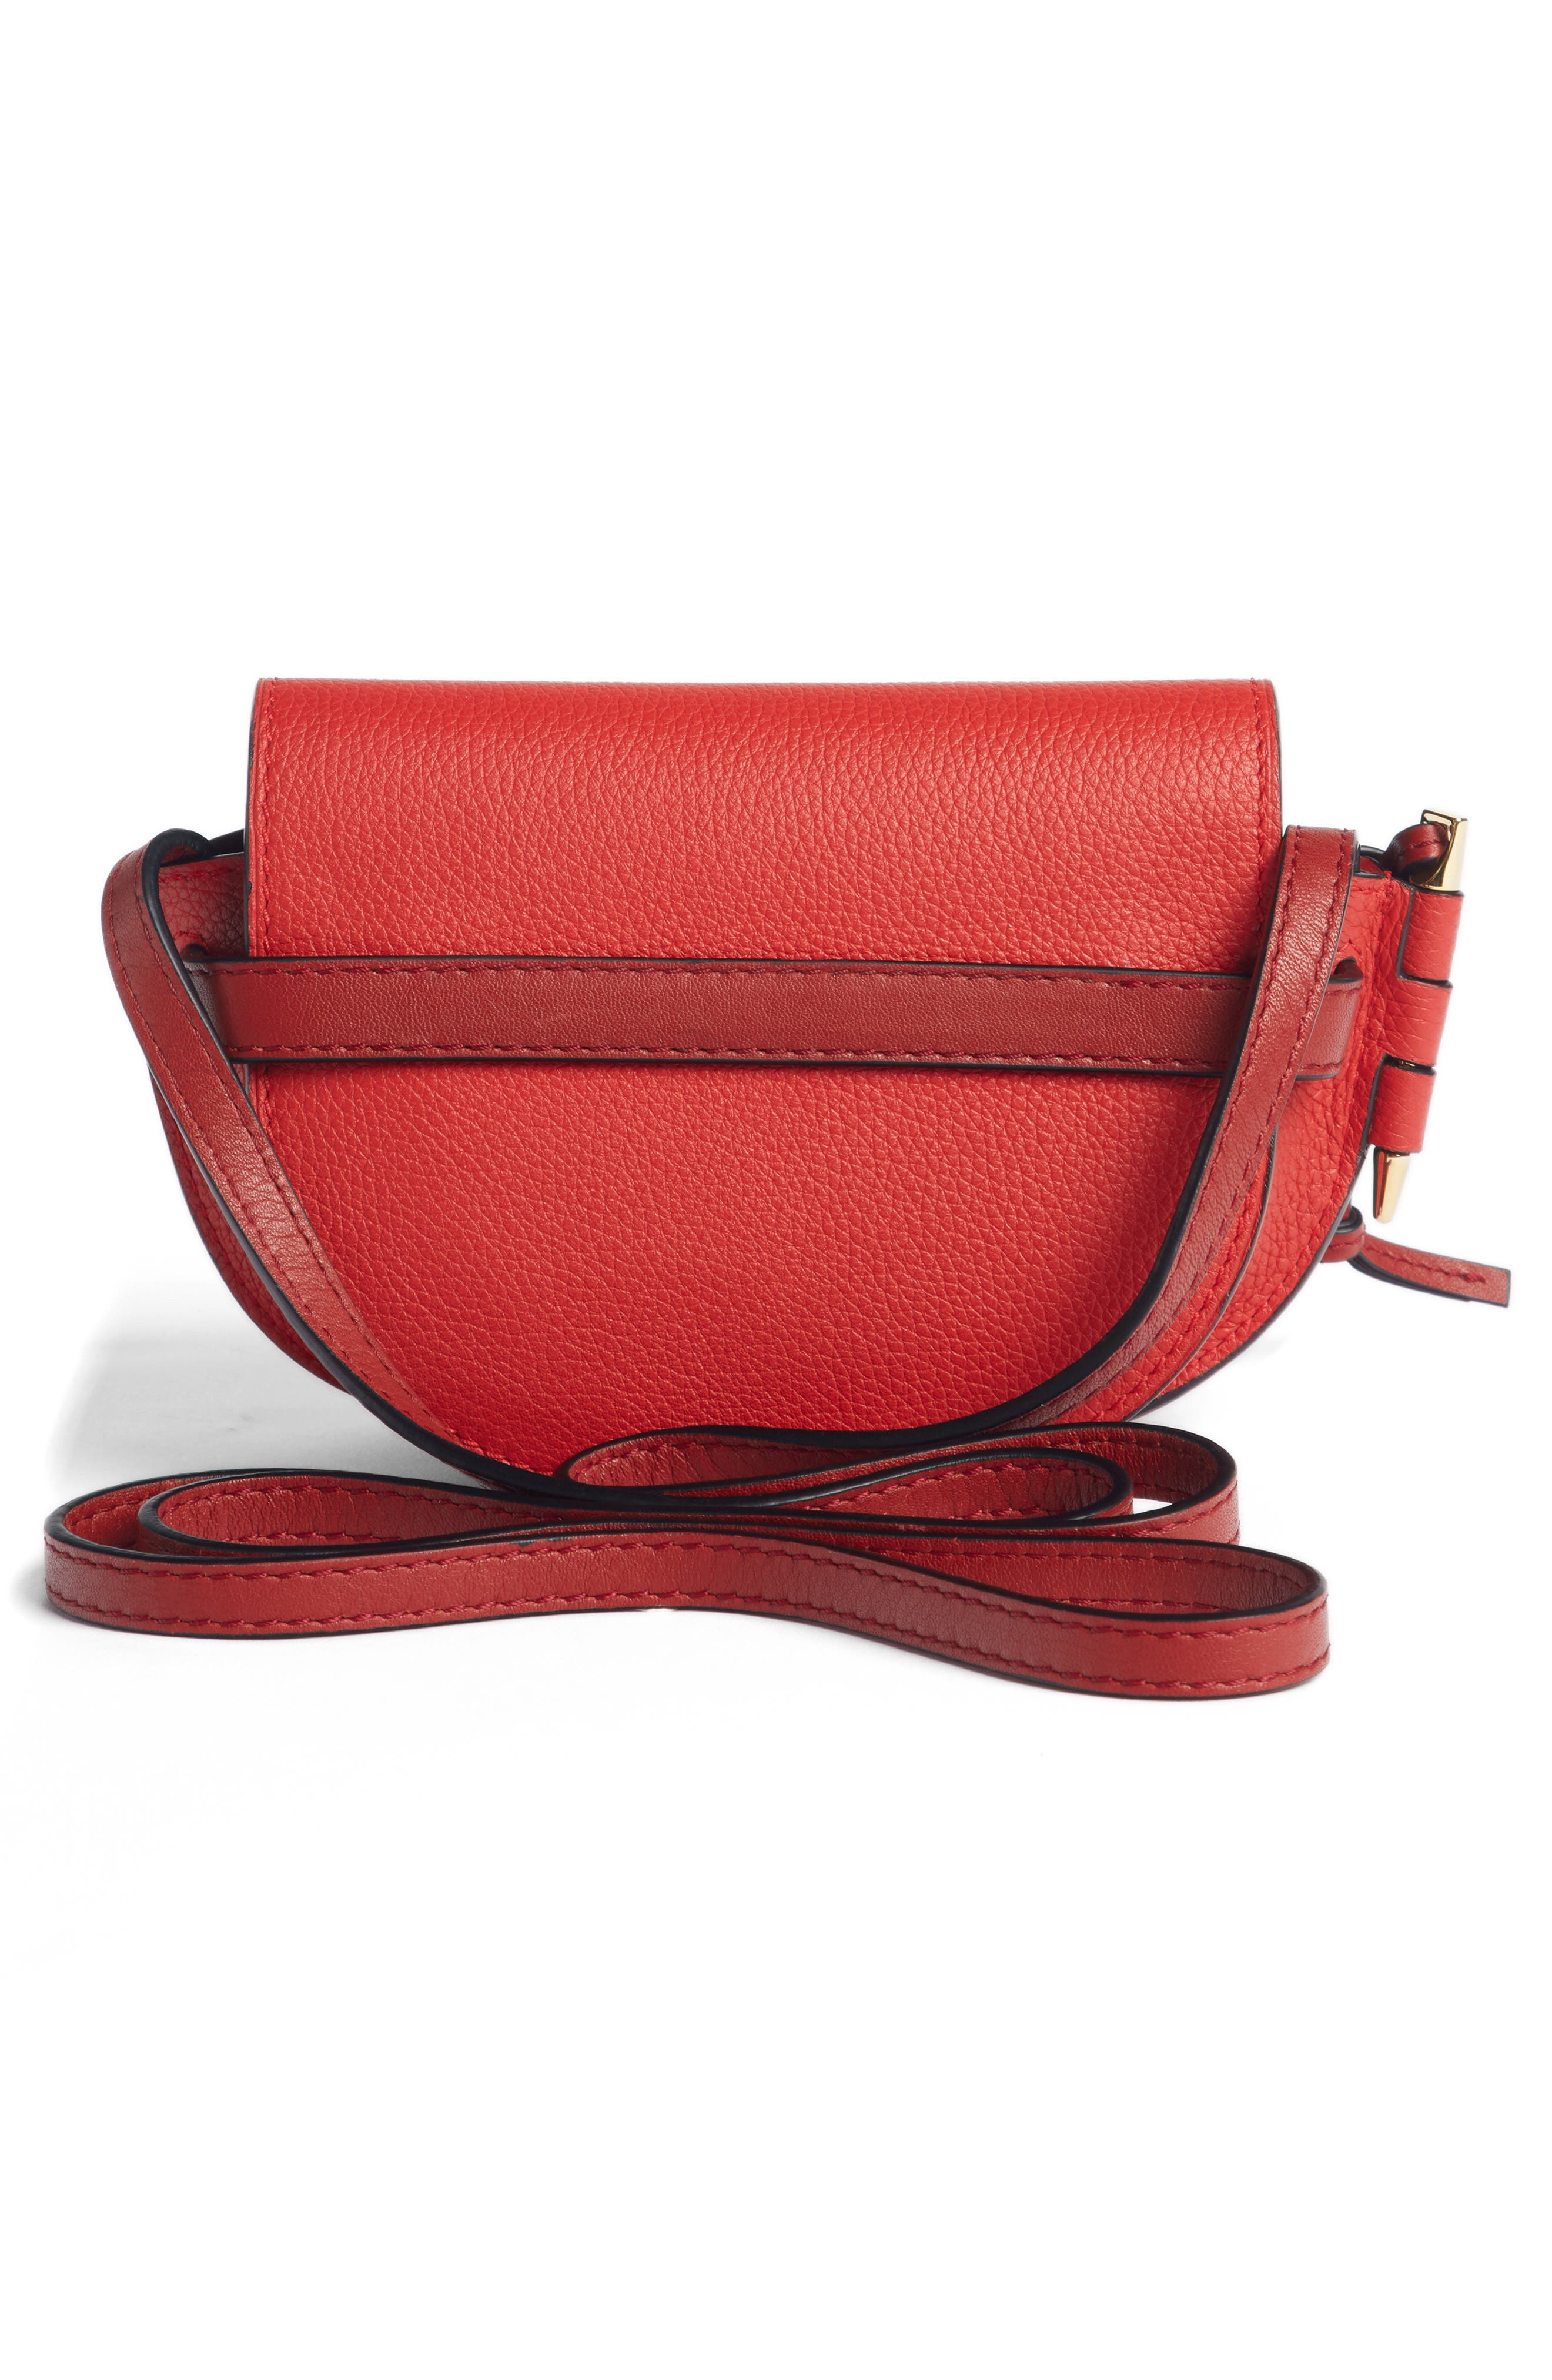 Small Gate Leather Crossbody Bag,                             Alternate thumbnail 3, color,                             SCARLET RED/ BURNT RED